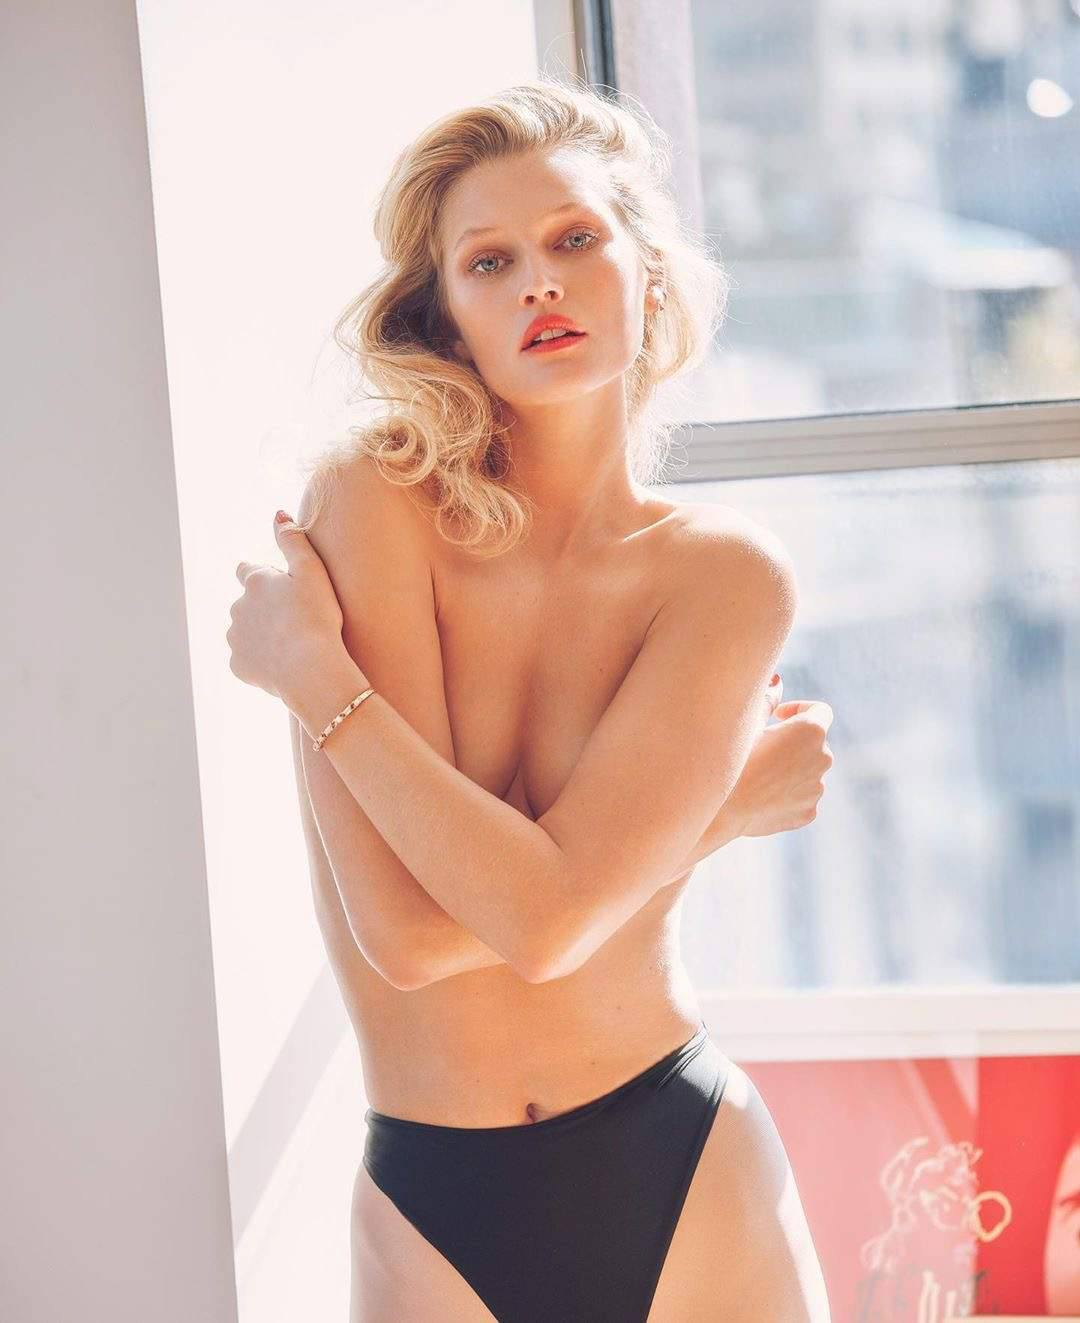 Toni Garrn Hot Photoshoot